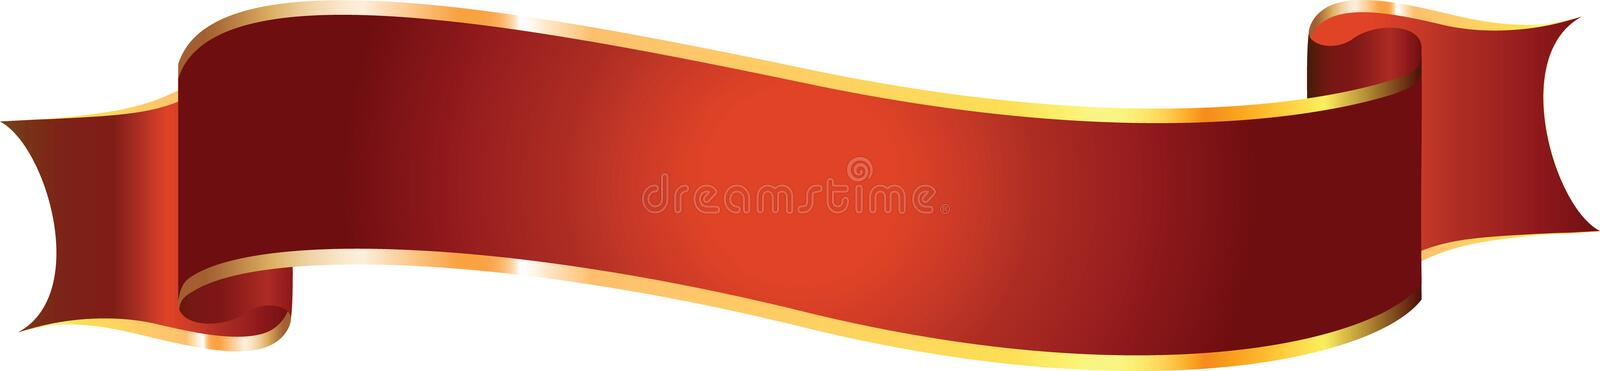 Vector banner royalty free illustration